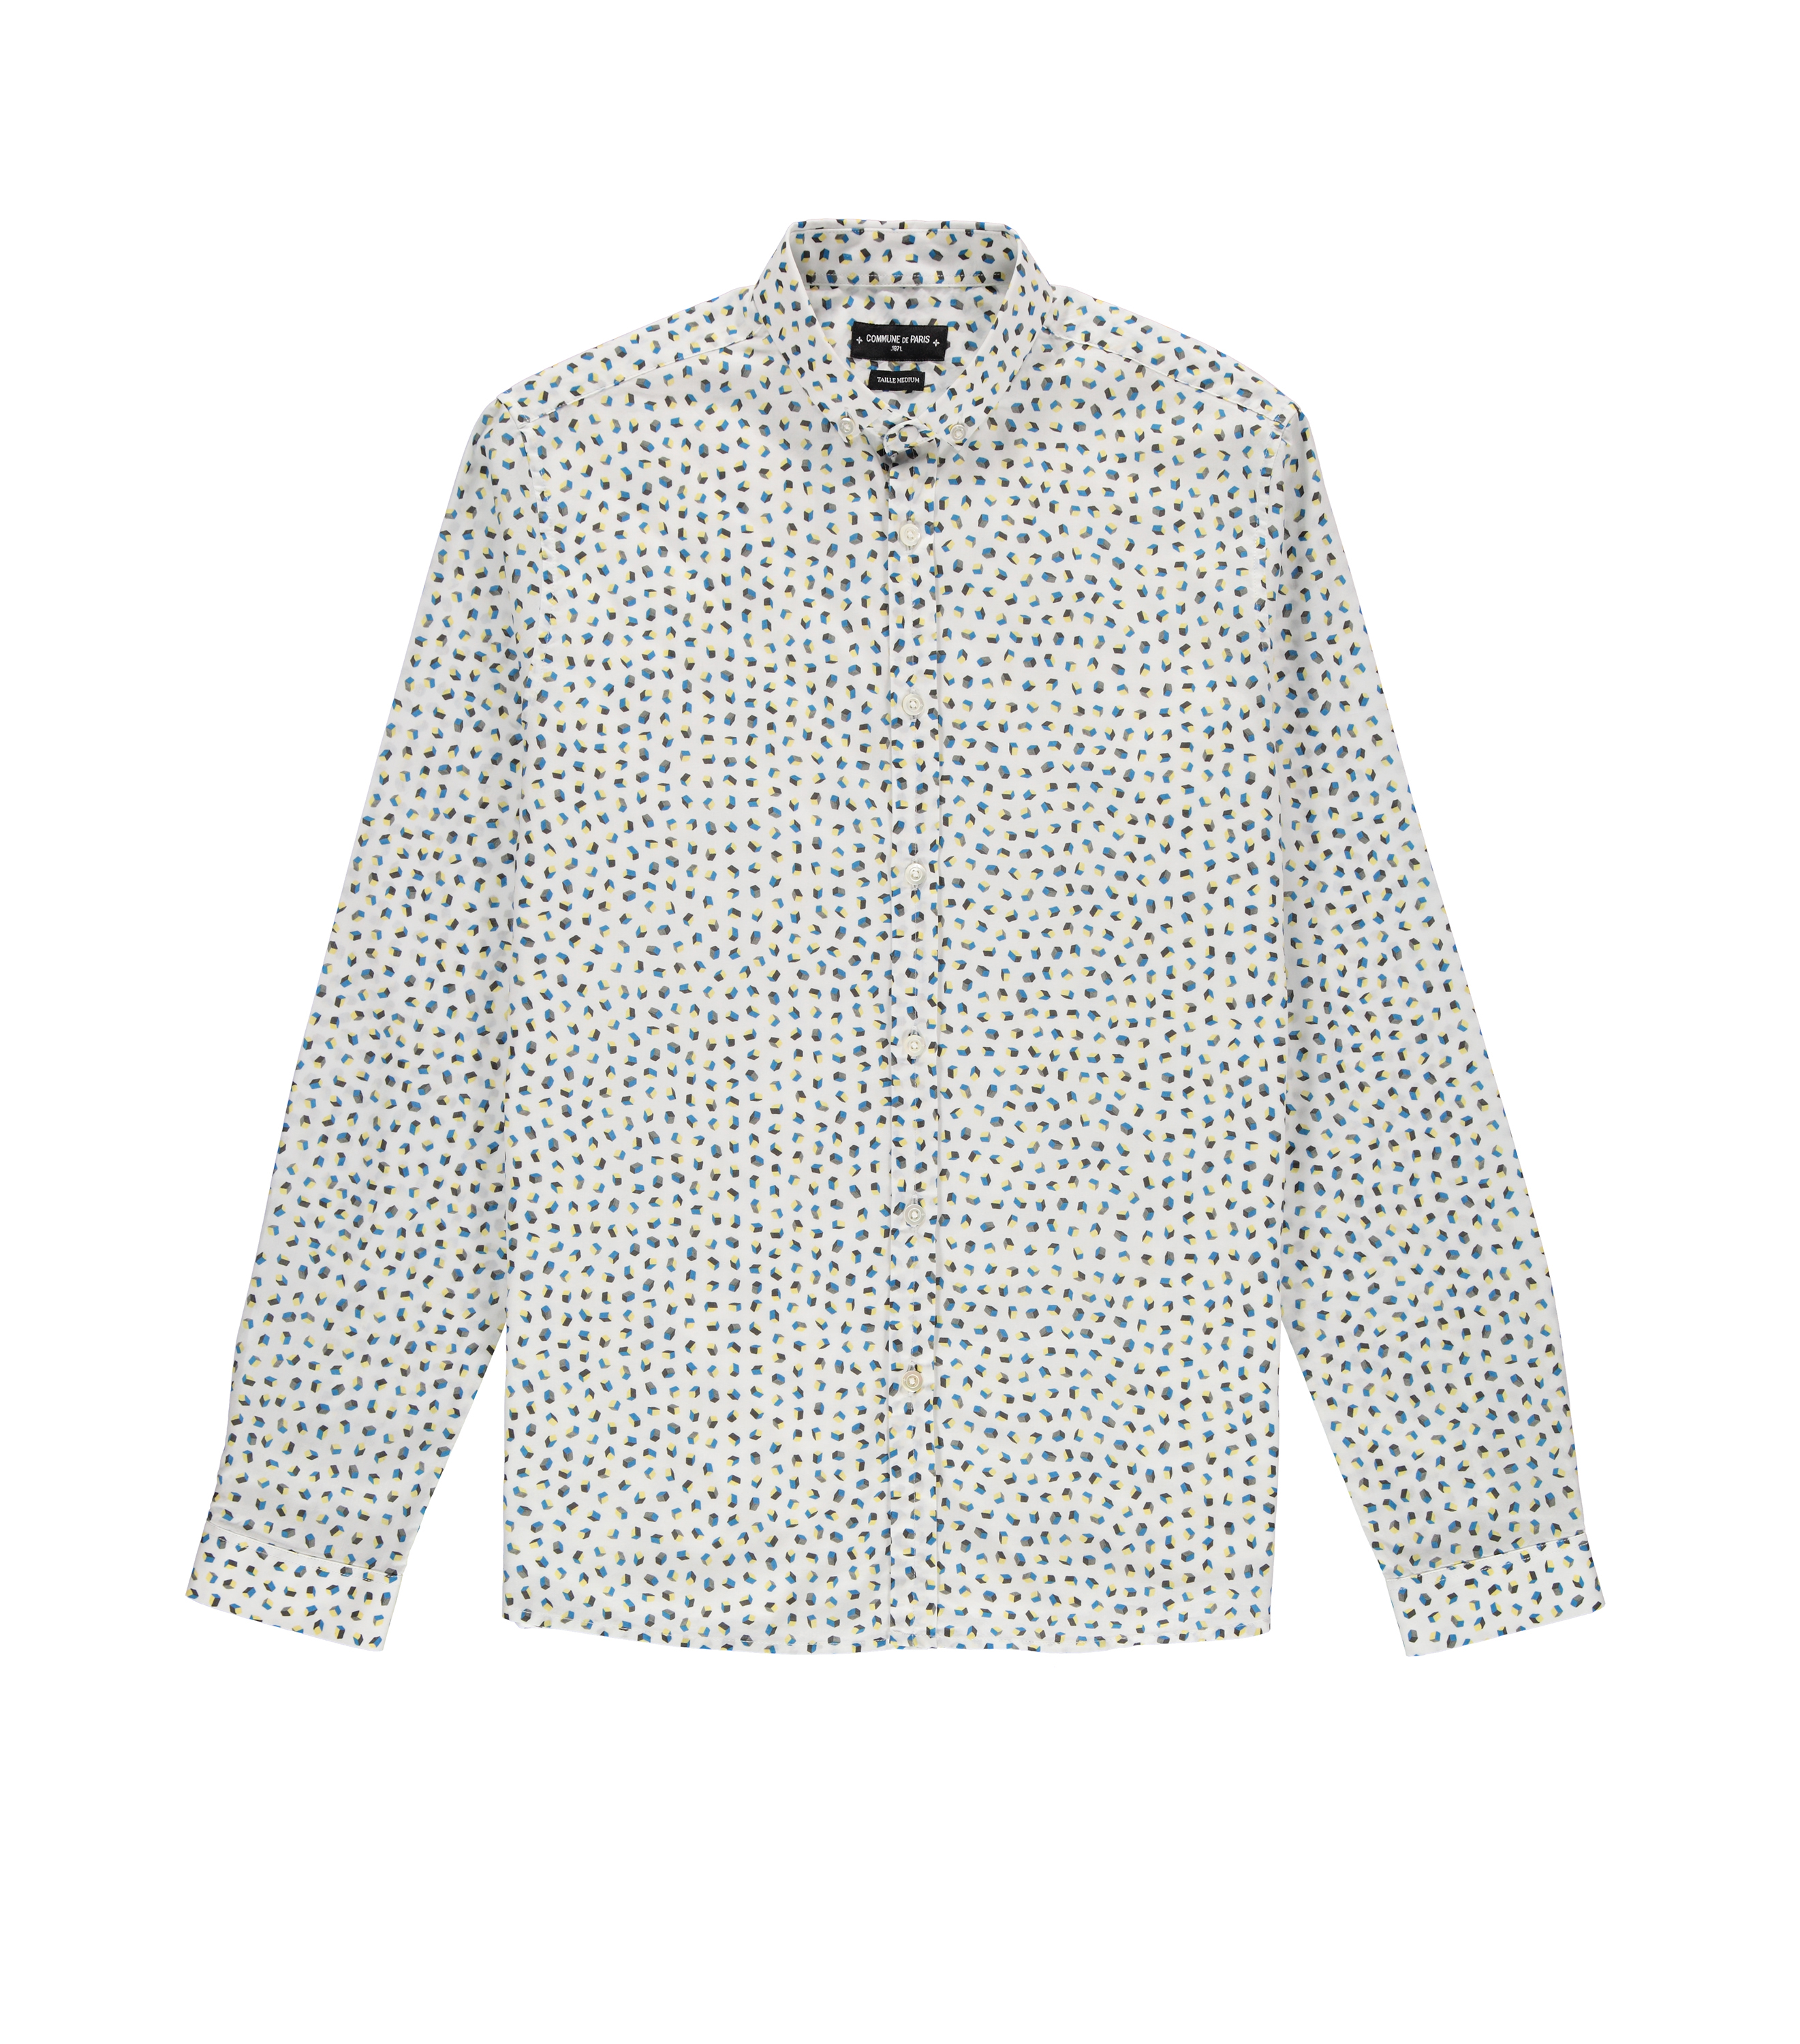 Shirt  Menand 04 - Paves print